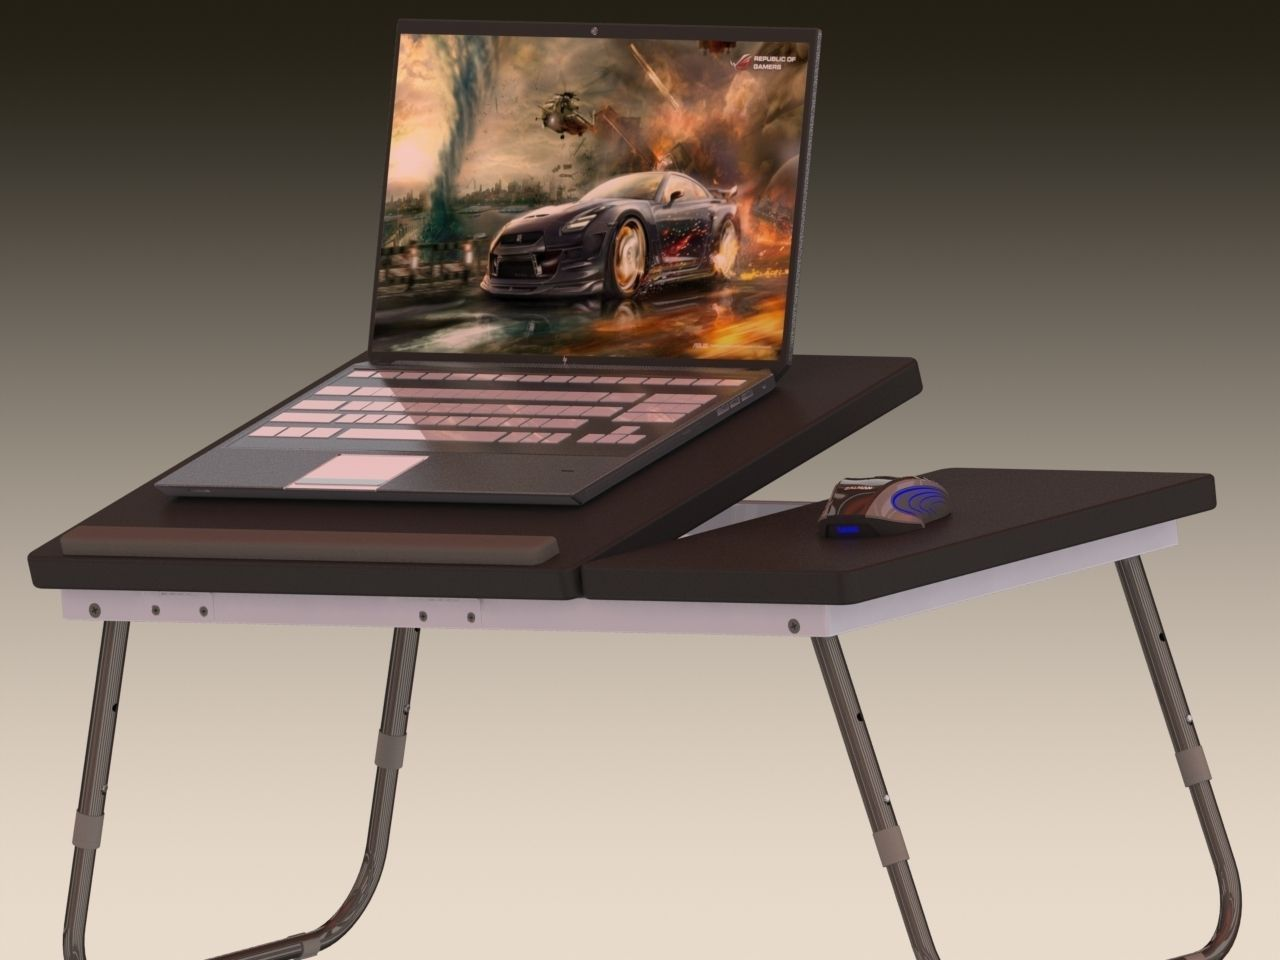 ... Adjustable Portable Laptop Table 3d Model Stl Sldprt Sldasm Slddrw Ige  Igs Iges Stp ...